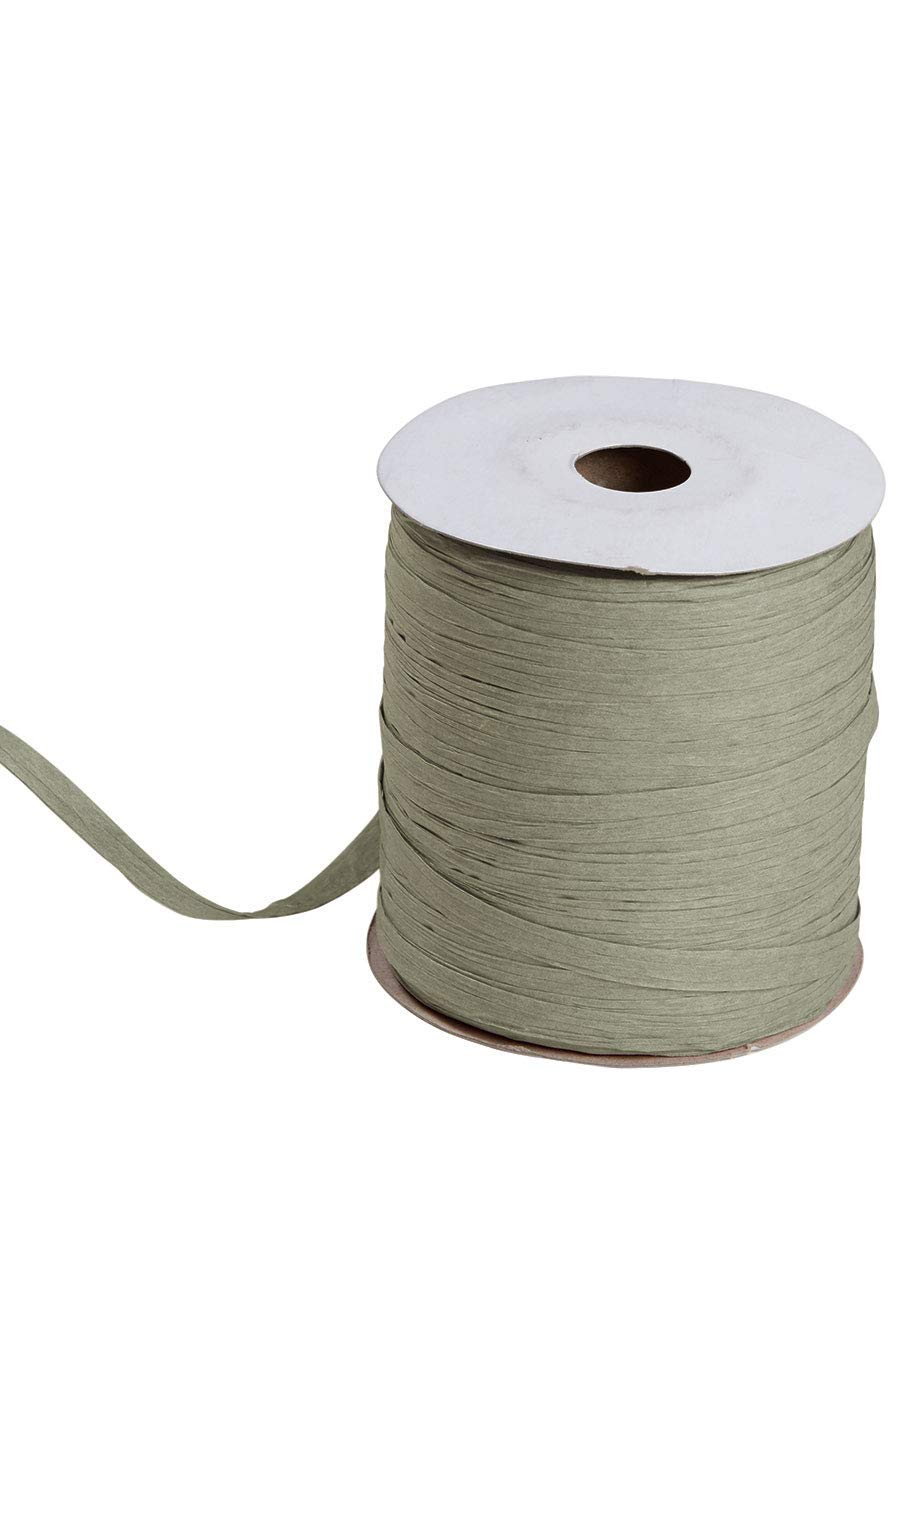 Olive Green Matte Raffia - 1/2''W x 100 Yds. Per Roll - Pack of 2 by SSWBasics